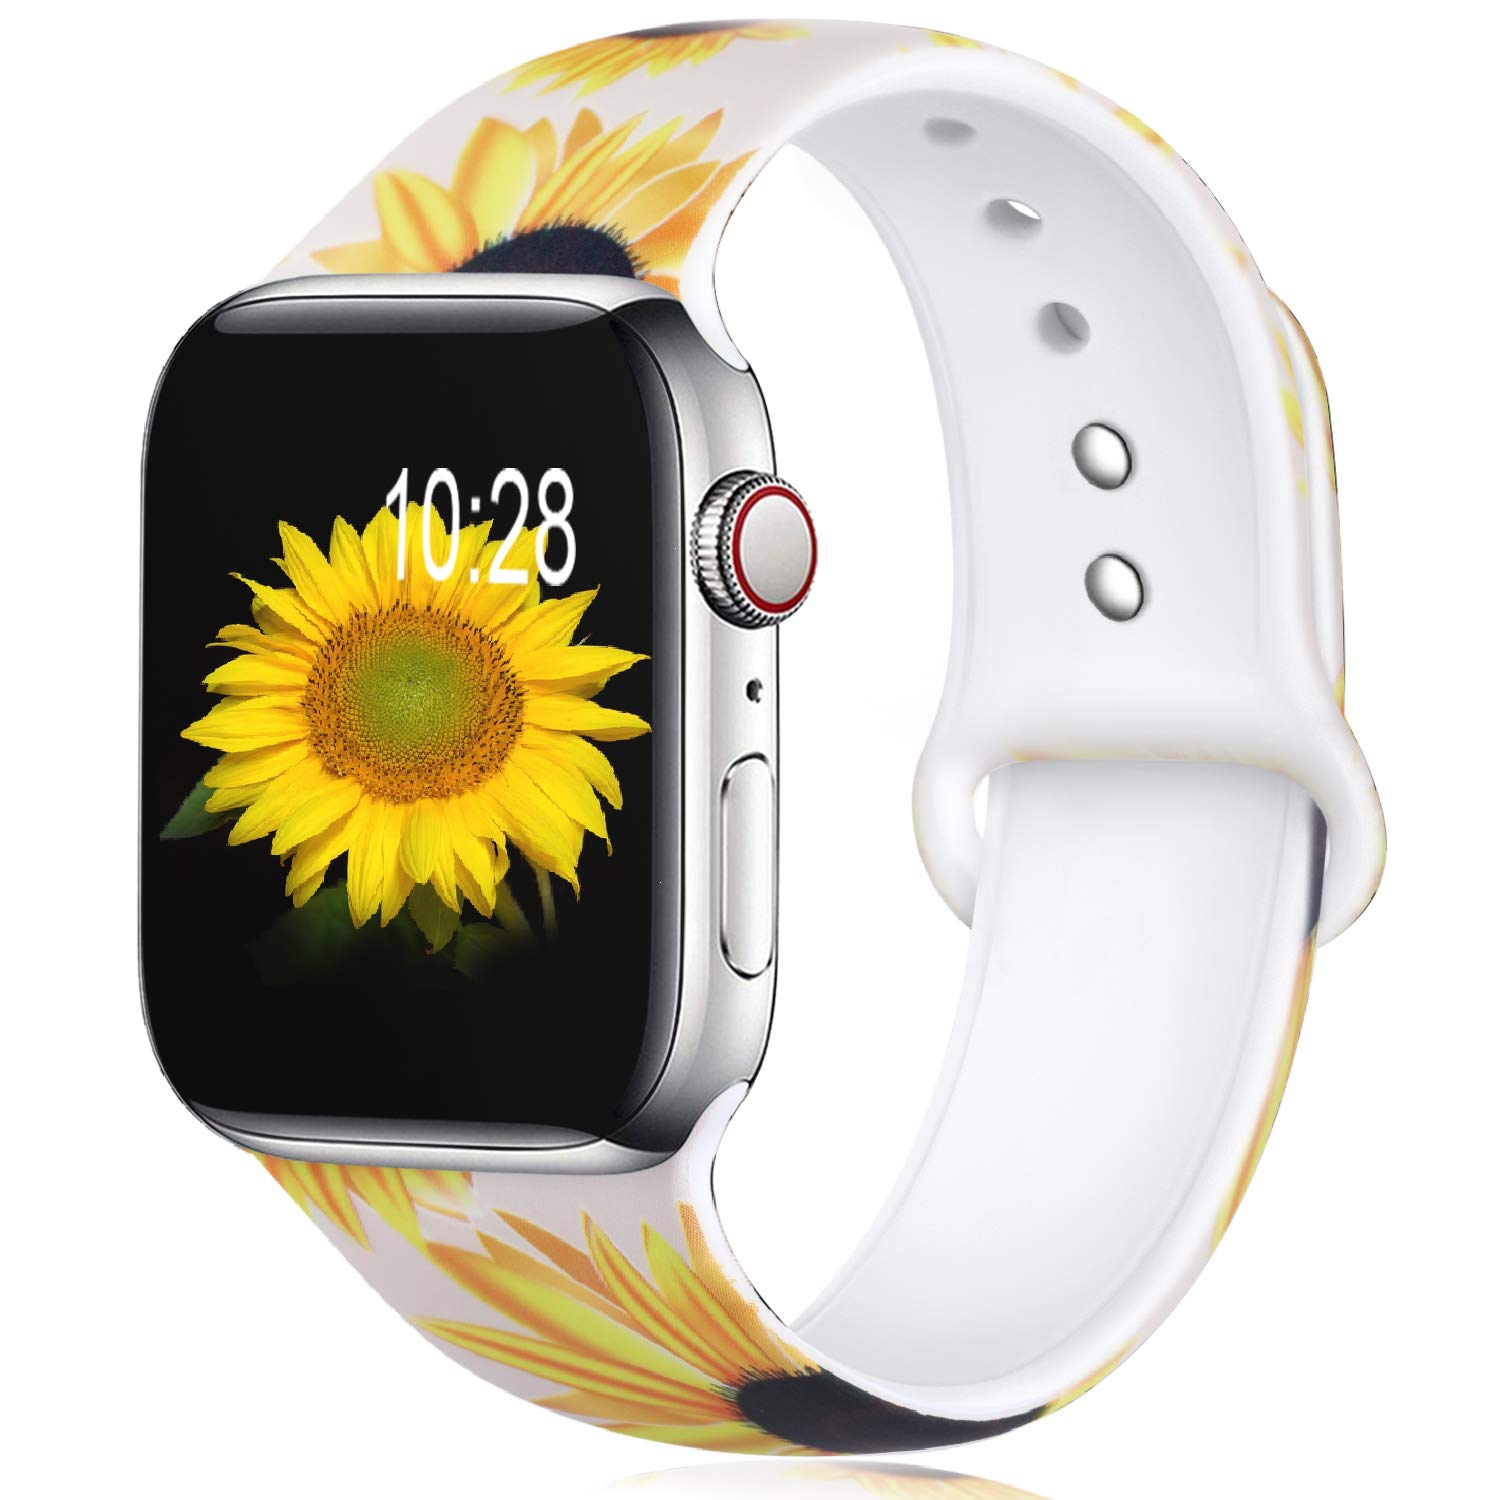 Apple Watch Silicone Strap Soft Band Series 6 5 4 3 2 1 38/40 42/44mm Color Printing Sports Sweatproof Breathable Wristband